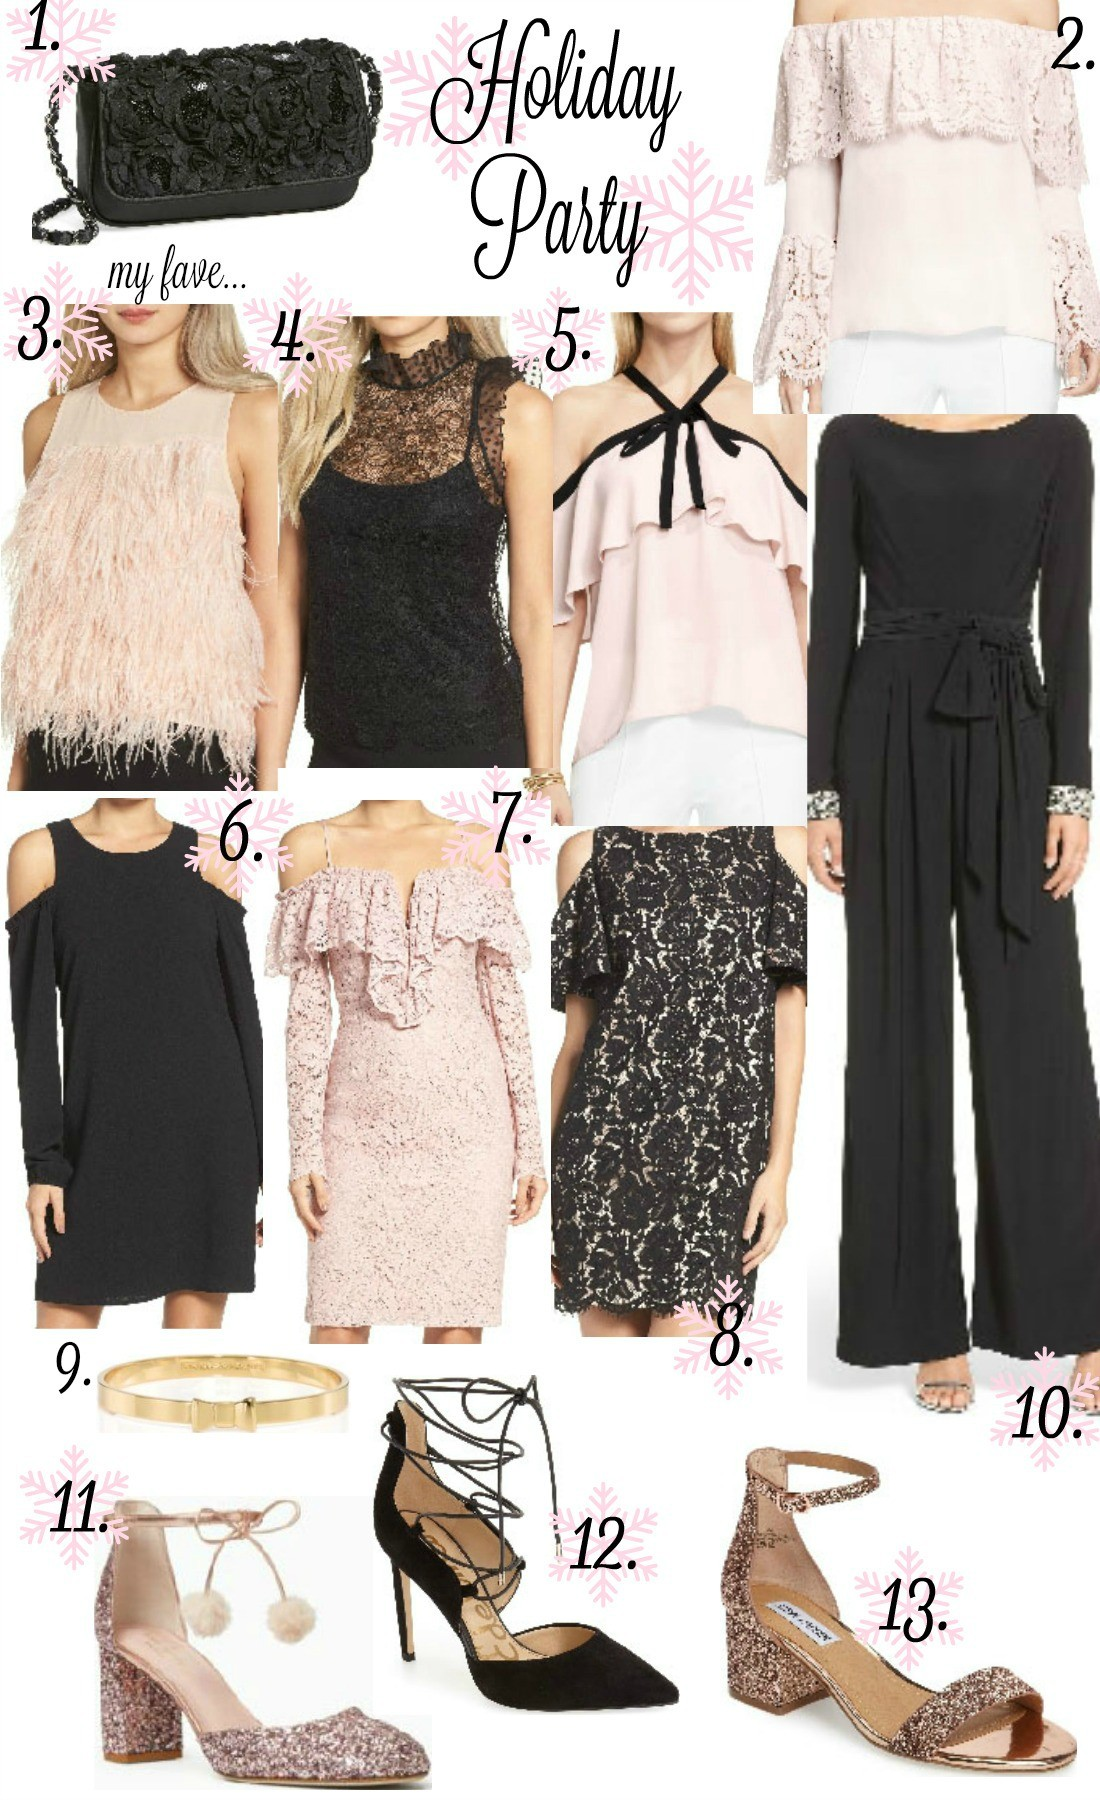 ea2adf518 Below are some of my favorite dresses, tops, clutches, & shoes… You can  click on any image to shop it! Also linking some other favorites below the  collage!